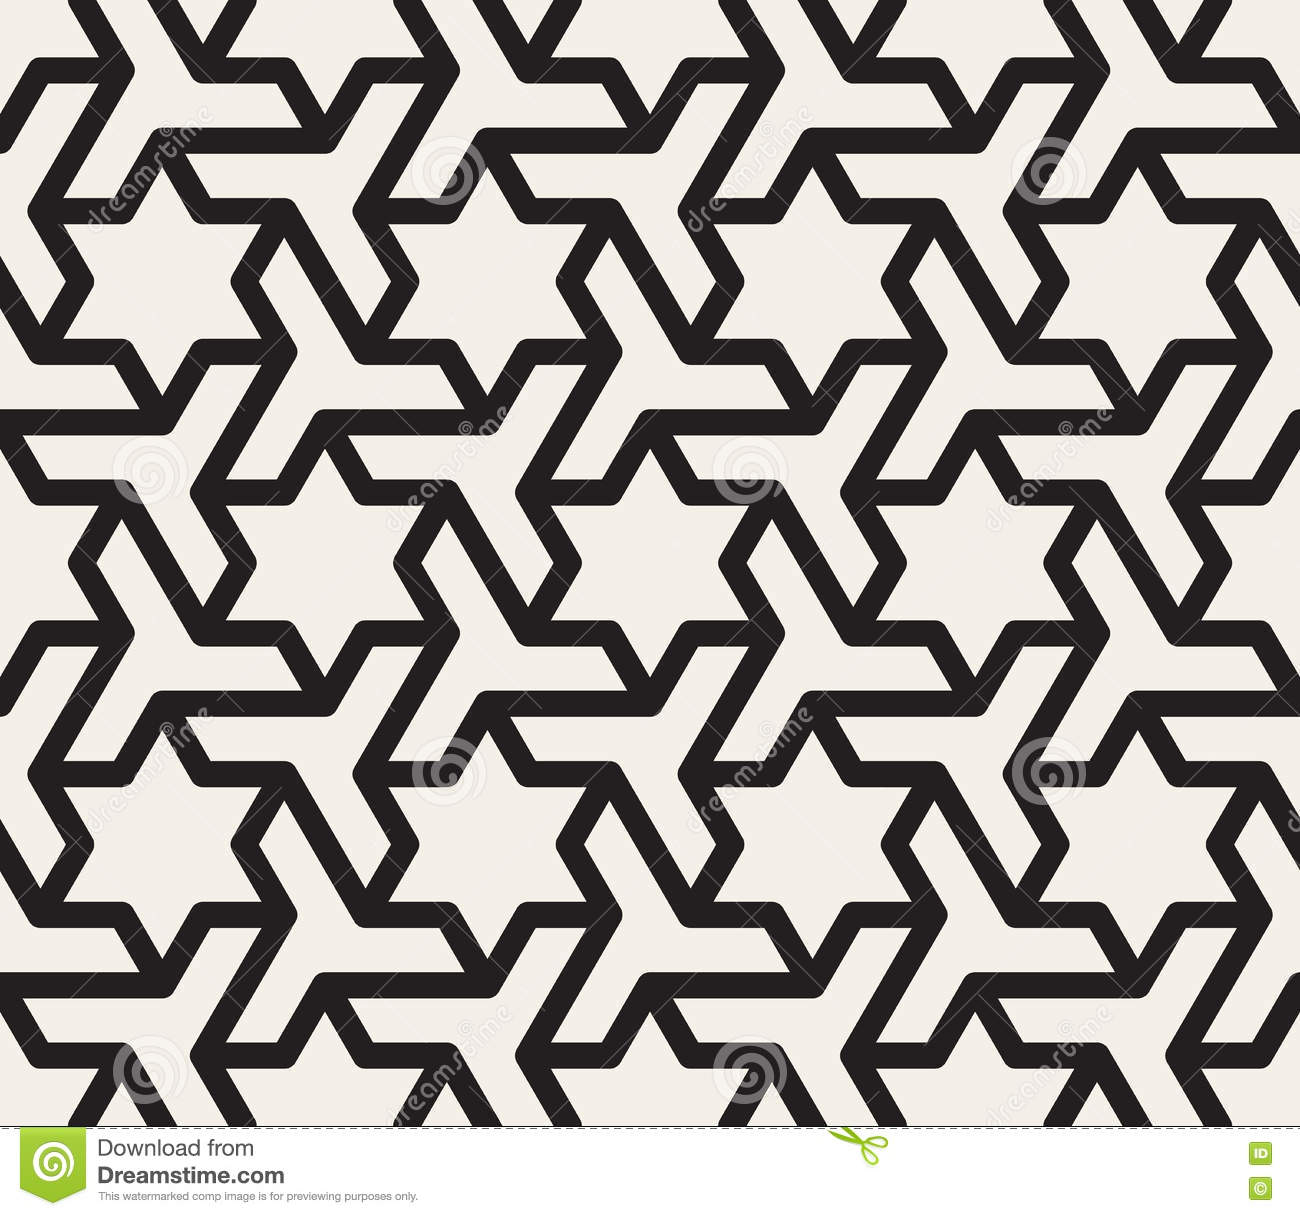 tessellation pattern A penrose tiling is an example of non-periodic tiling  of kepler's finite aa pattern  which tile together to produce the non-periodic tessellation.